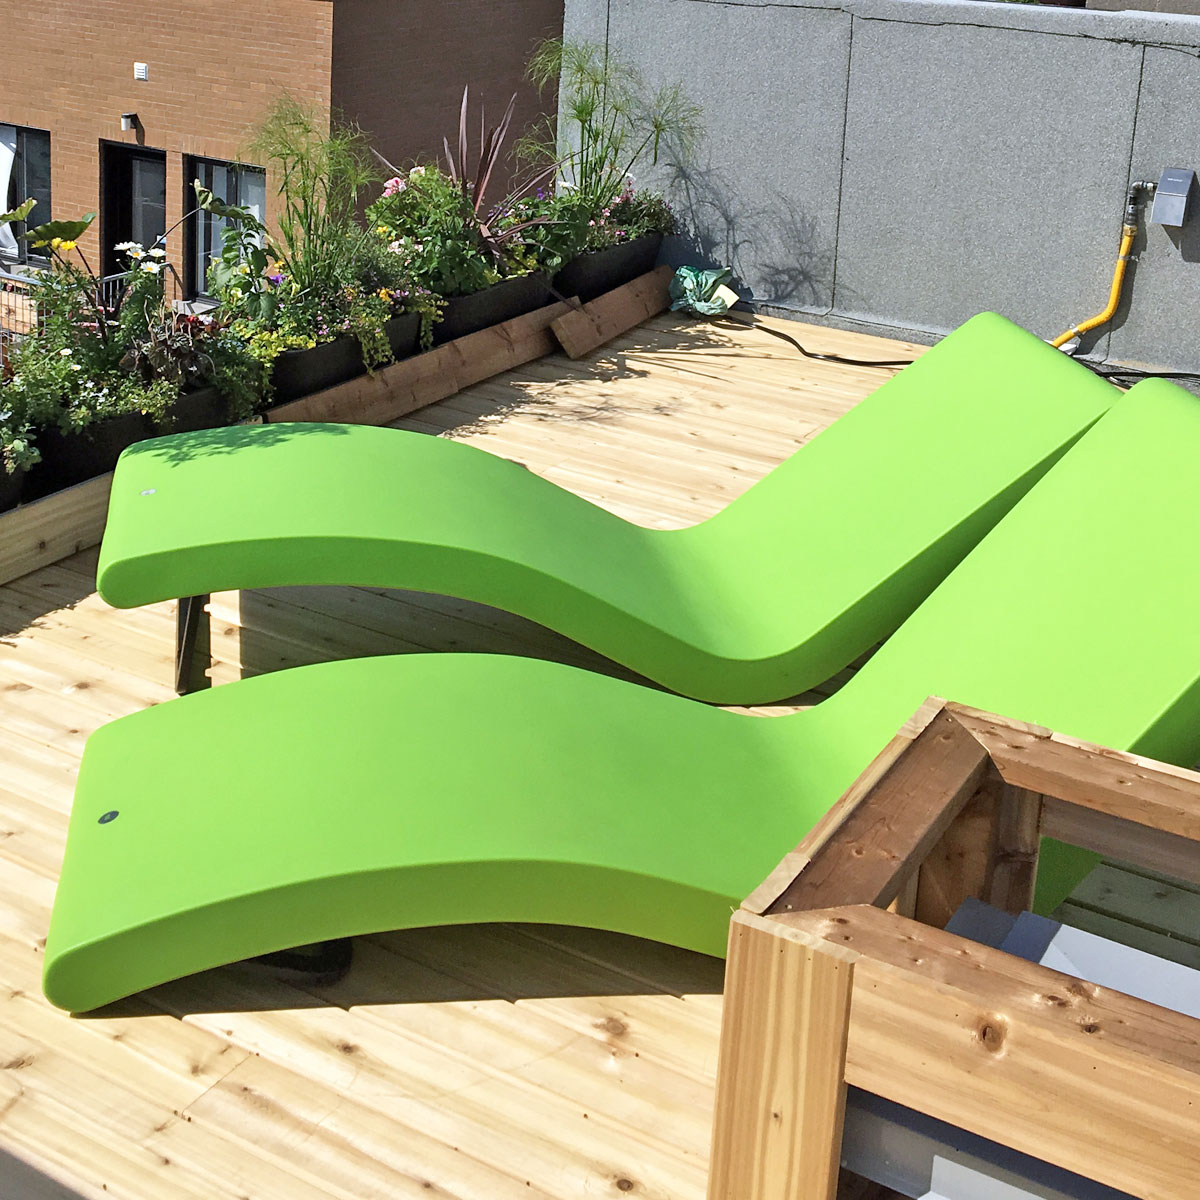 Rooftop Chaises Pair in Winter Months